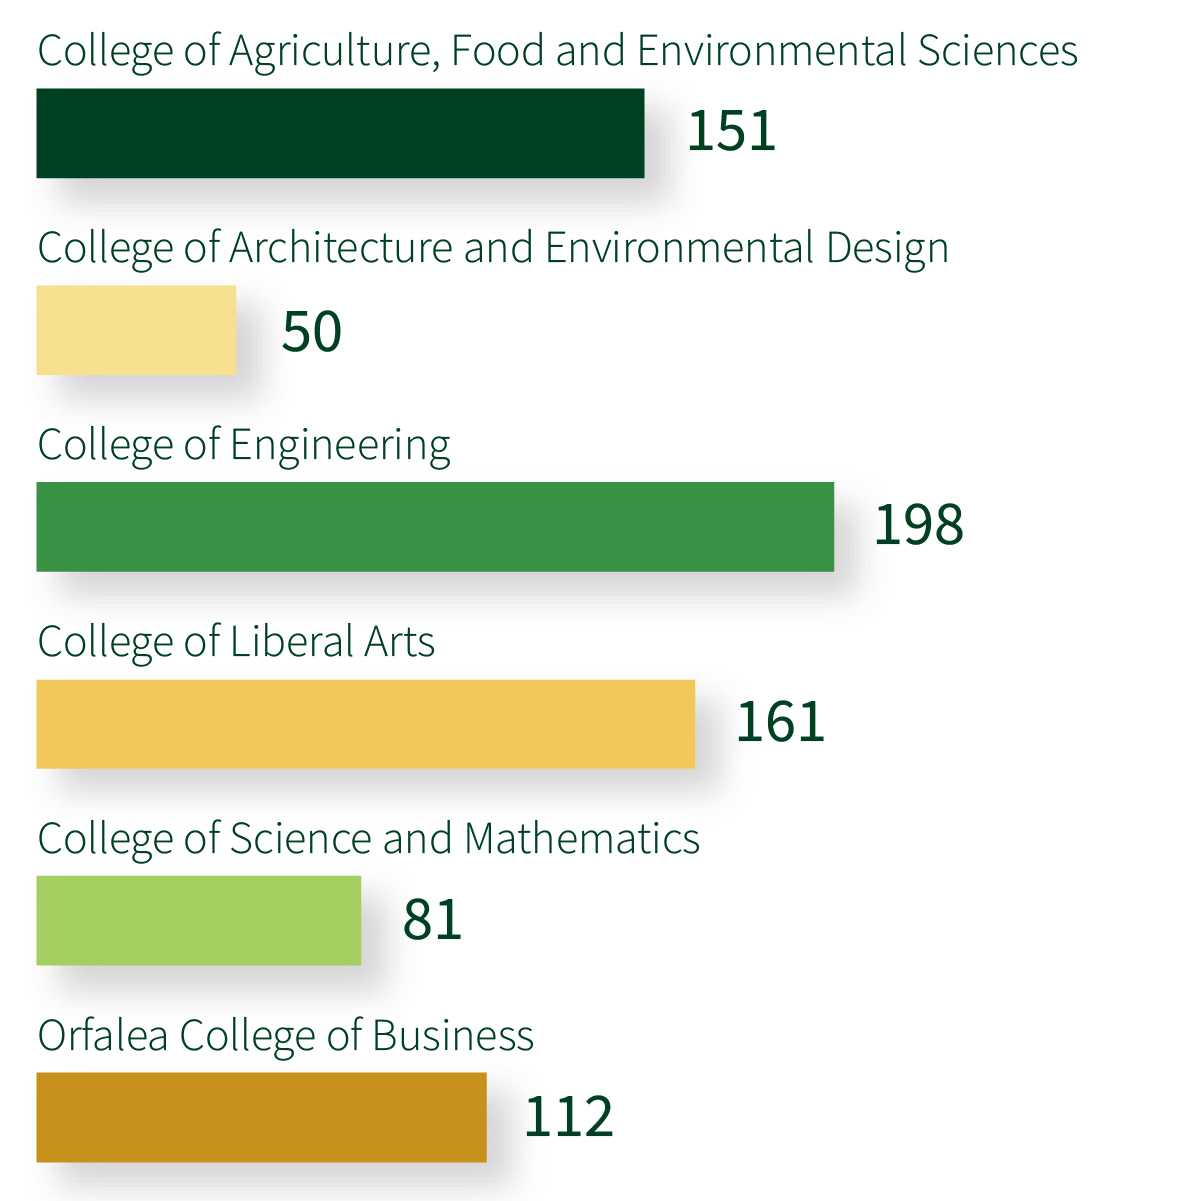 CAFES 151 students, CAED 50 students, Engineering 198 students, CLA 161 students, CSM 81 students, OCOBS 112 students